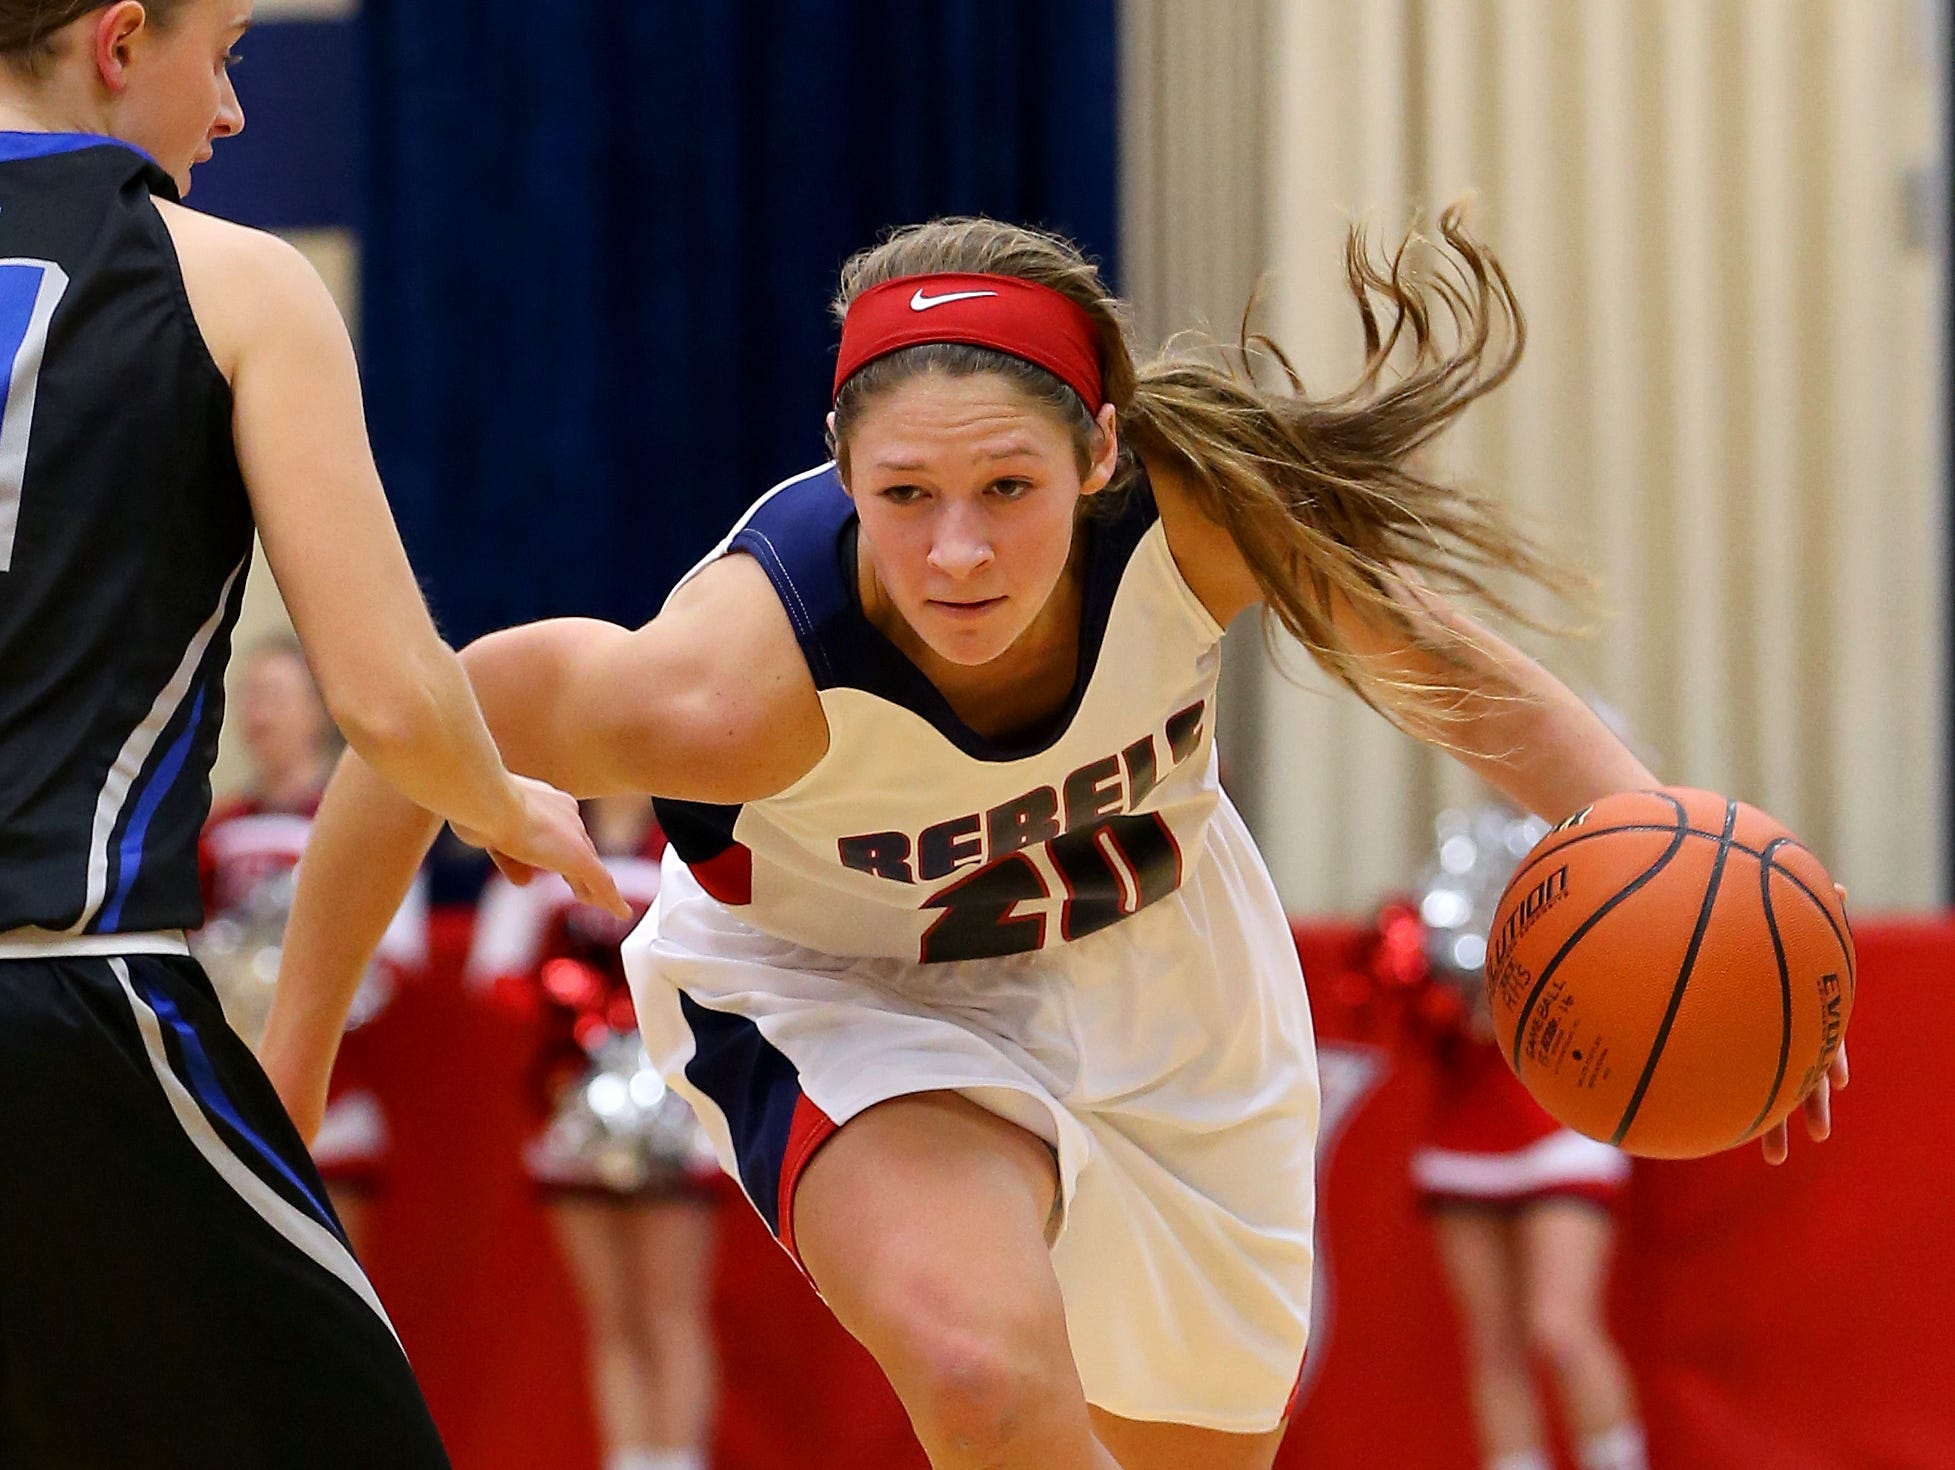 Roncalli's Lindsey Corsaro is one of four finalists for IndyStar Miss Basketball.